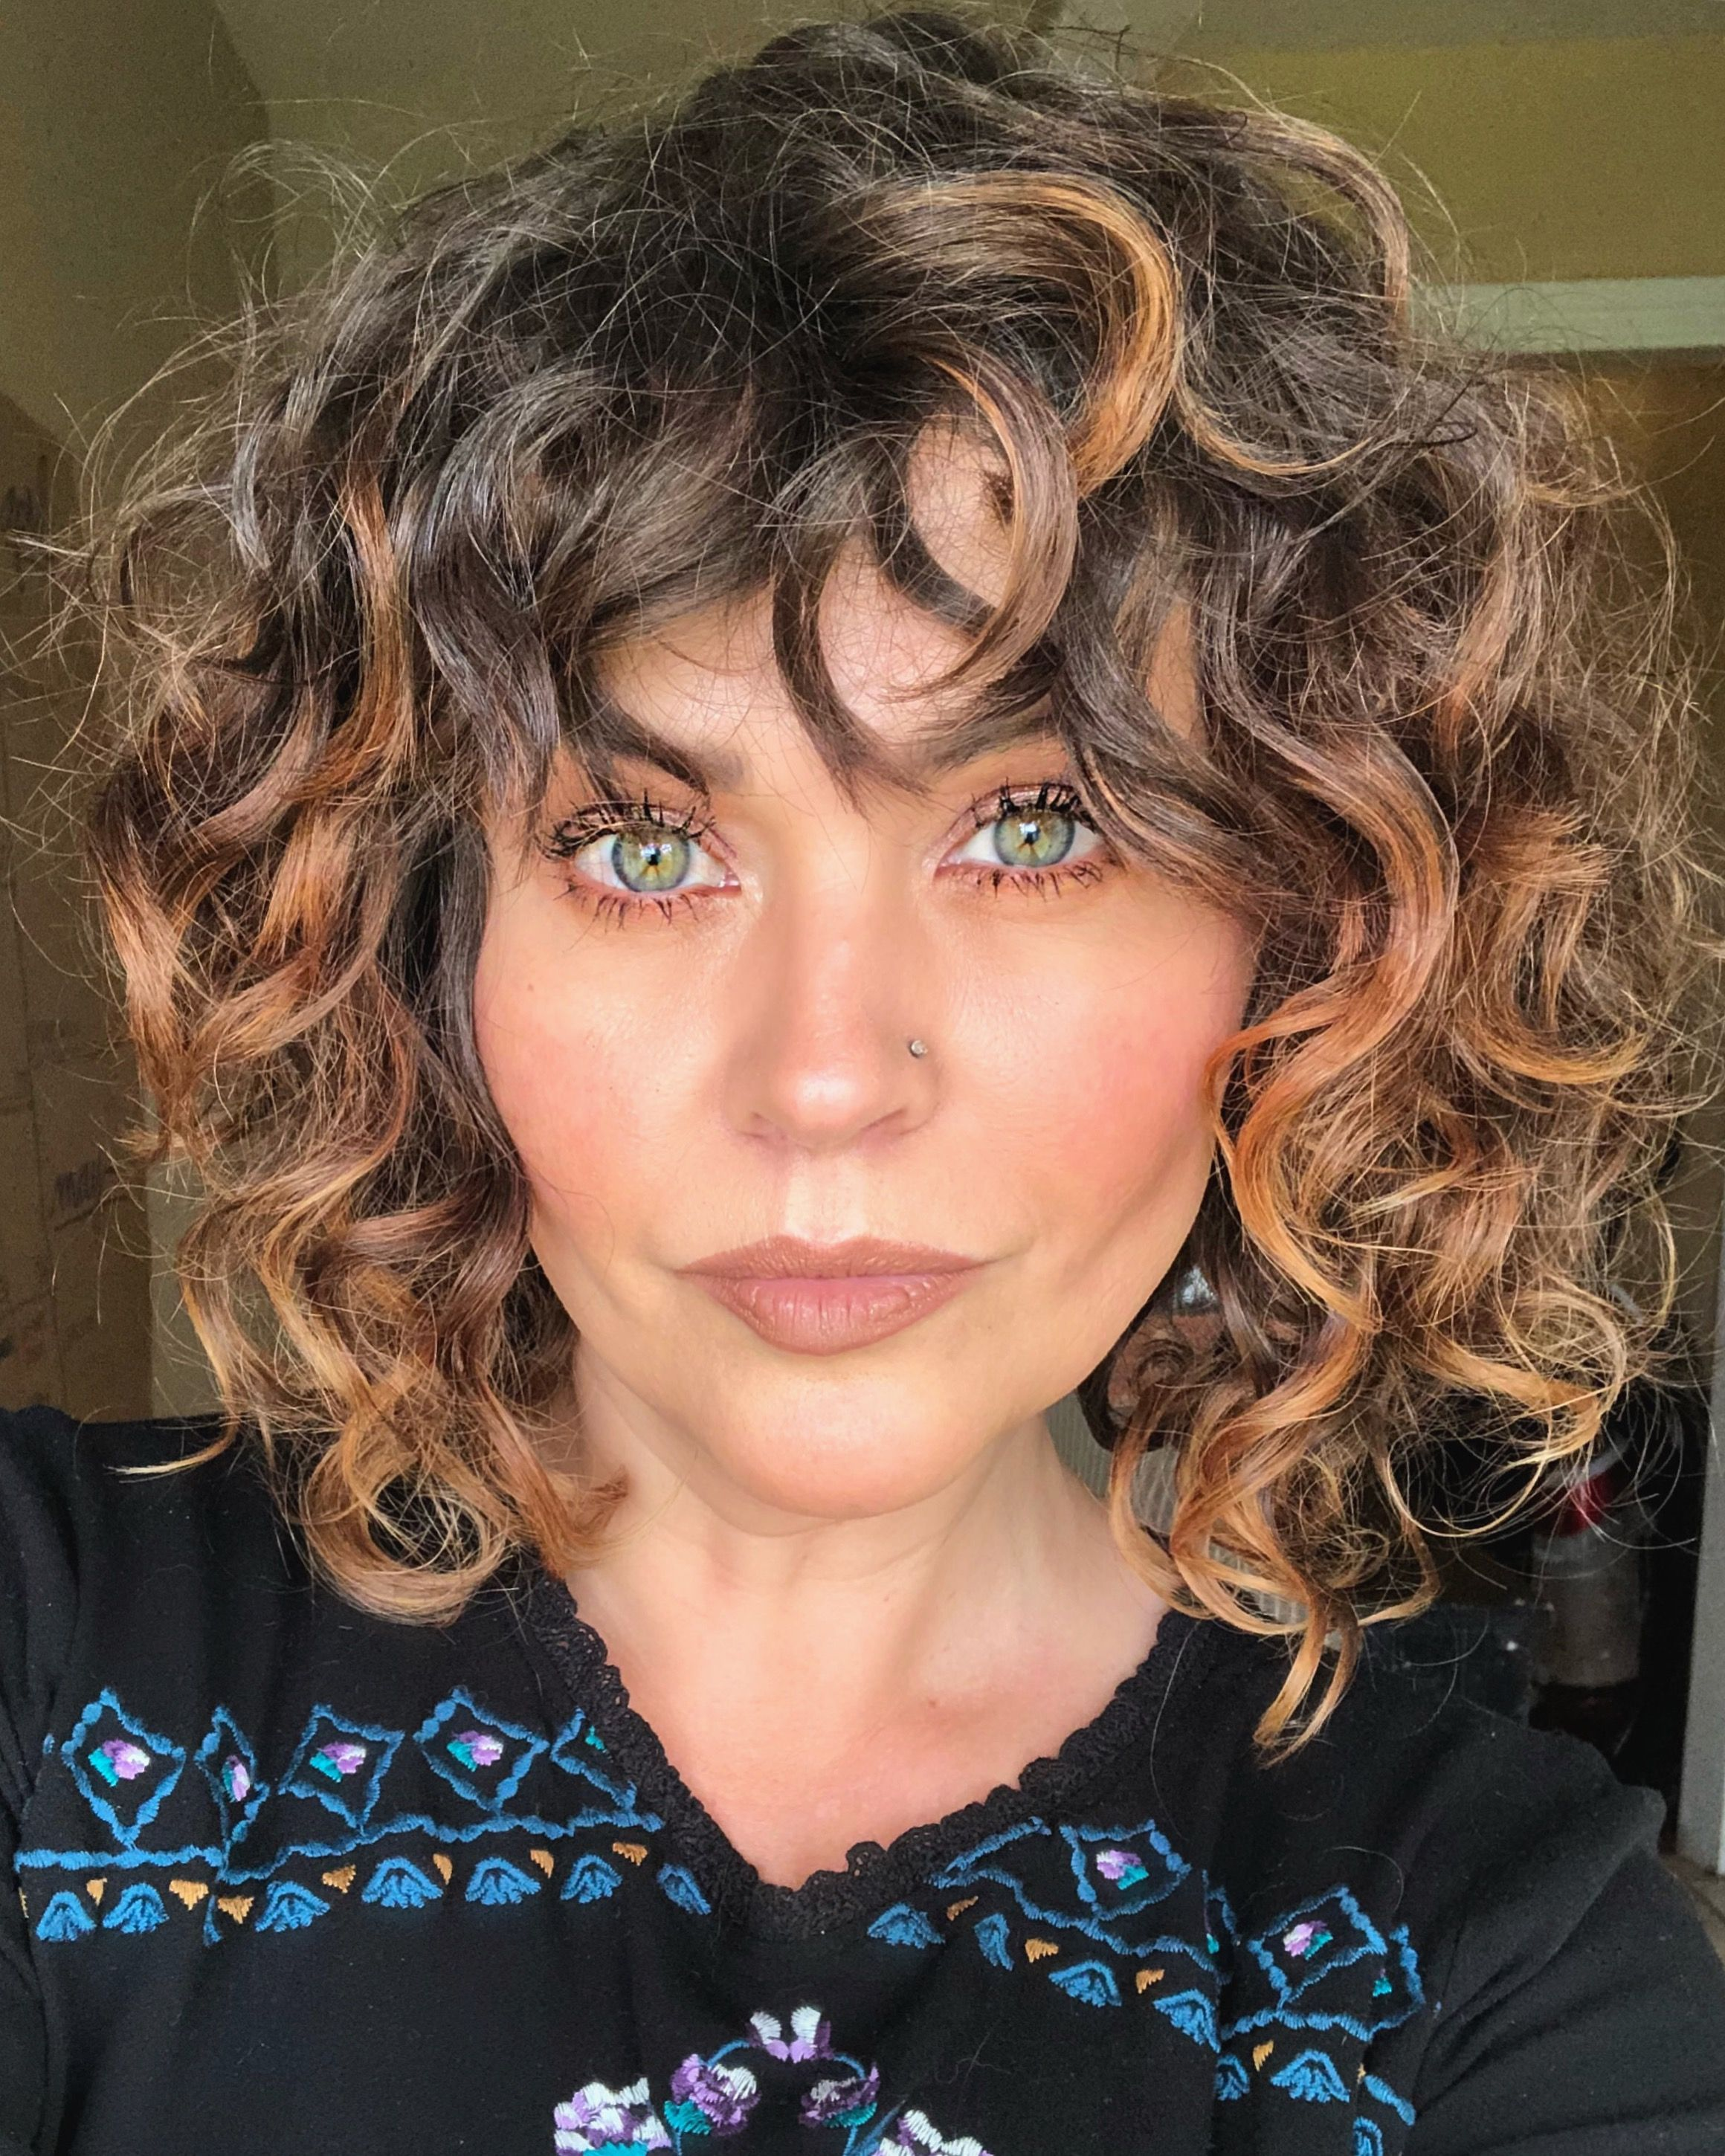 Curls Curly Hair Devacurl Curly Bob Short Curly Hair Curly Highlights Breckhouse Curly Hair Styles Curly Bob Hairstyles Curly Hair Styles Naturally